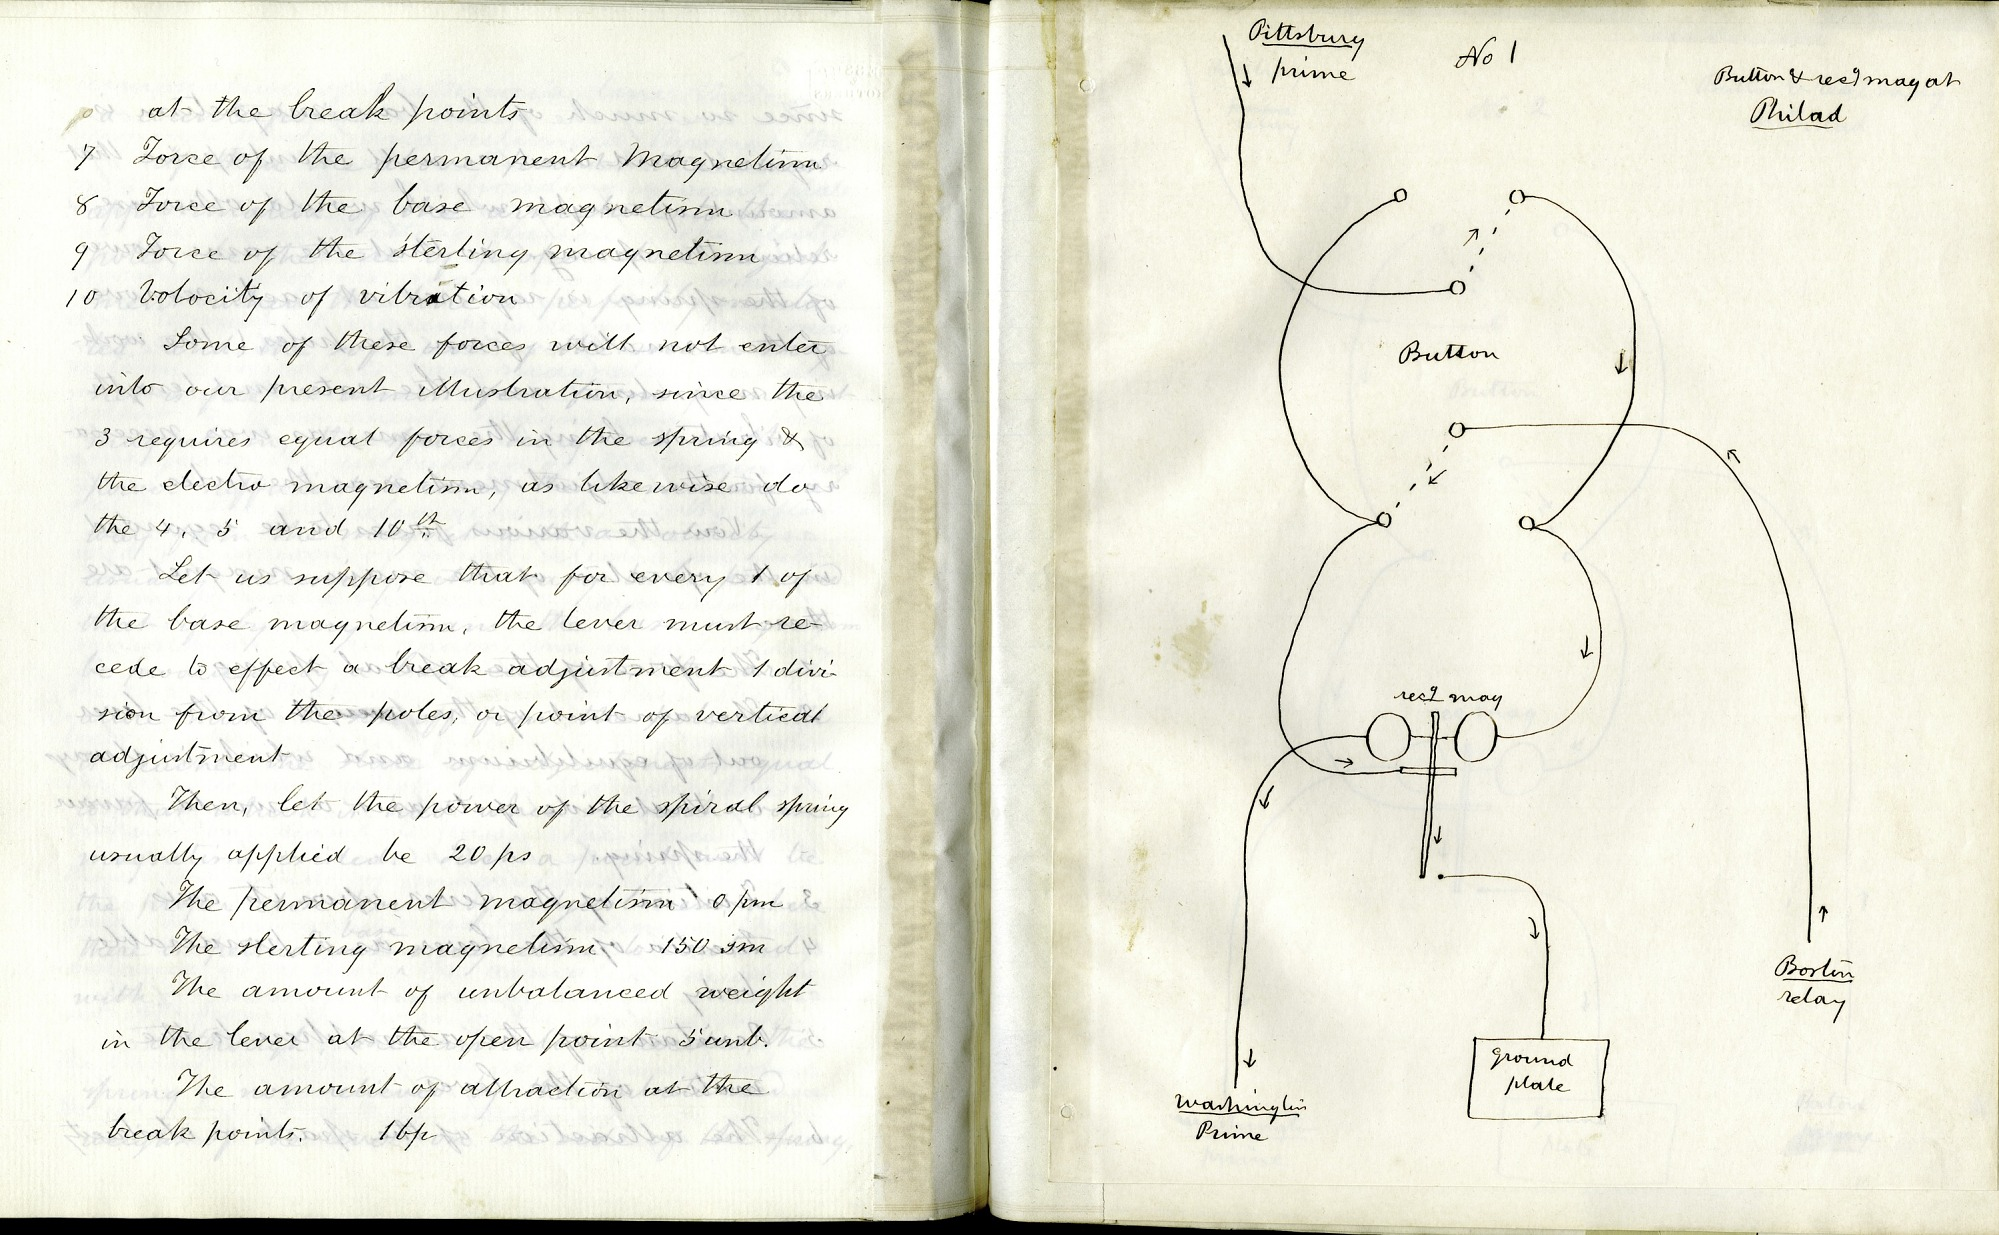 Alfred Vail's Electromagnetic Telegraph Notes